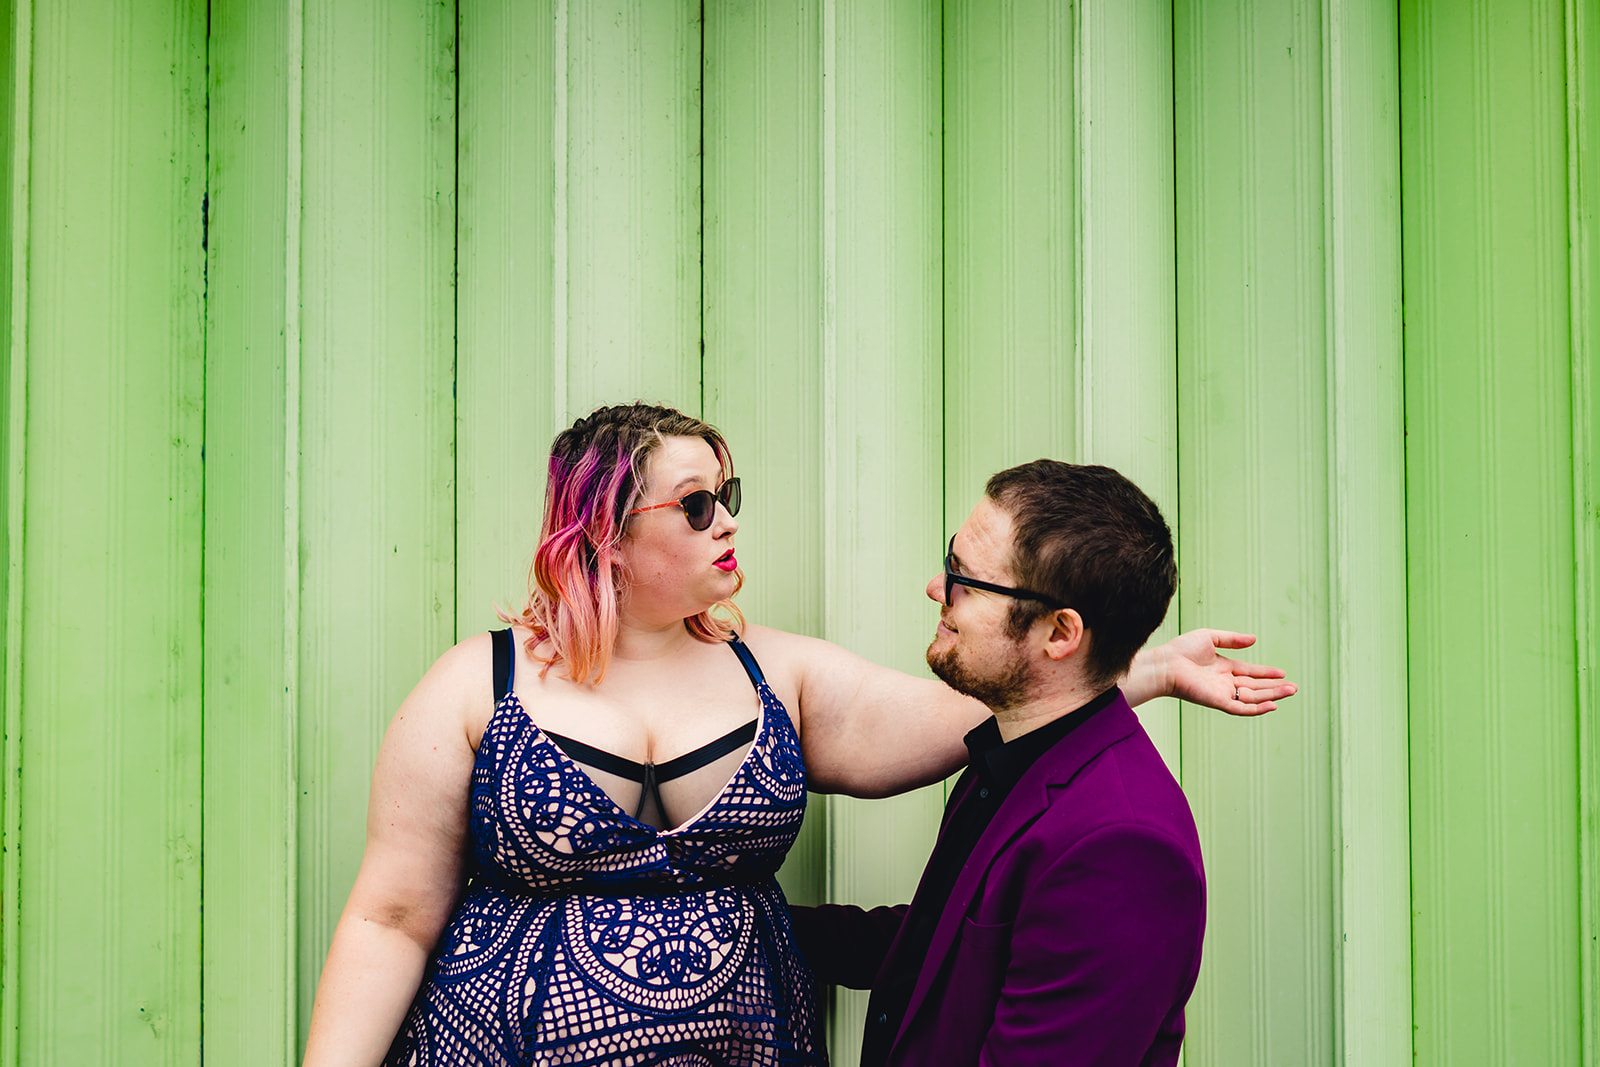 engagement shoots - birmingham engagement shoot - colourful wedding photoshoot - quirky wedding photos - fun wedding photography - alternative wedding